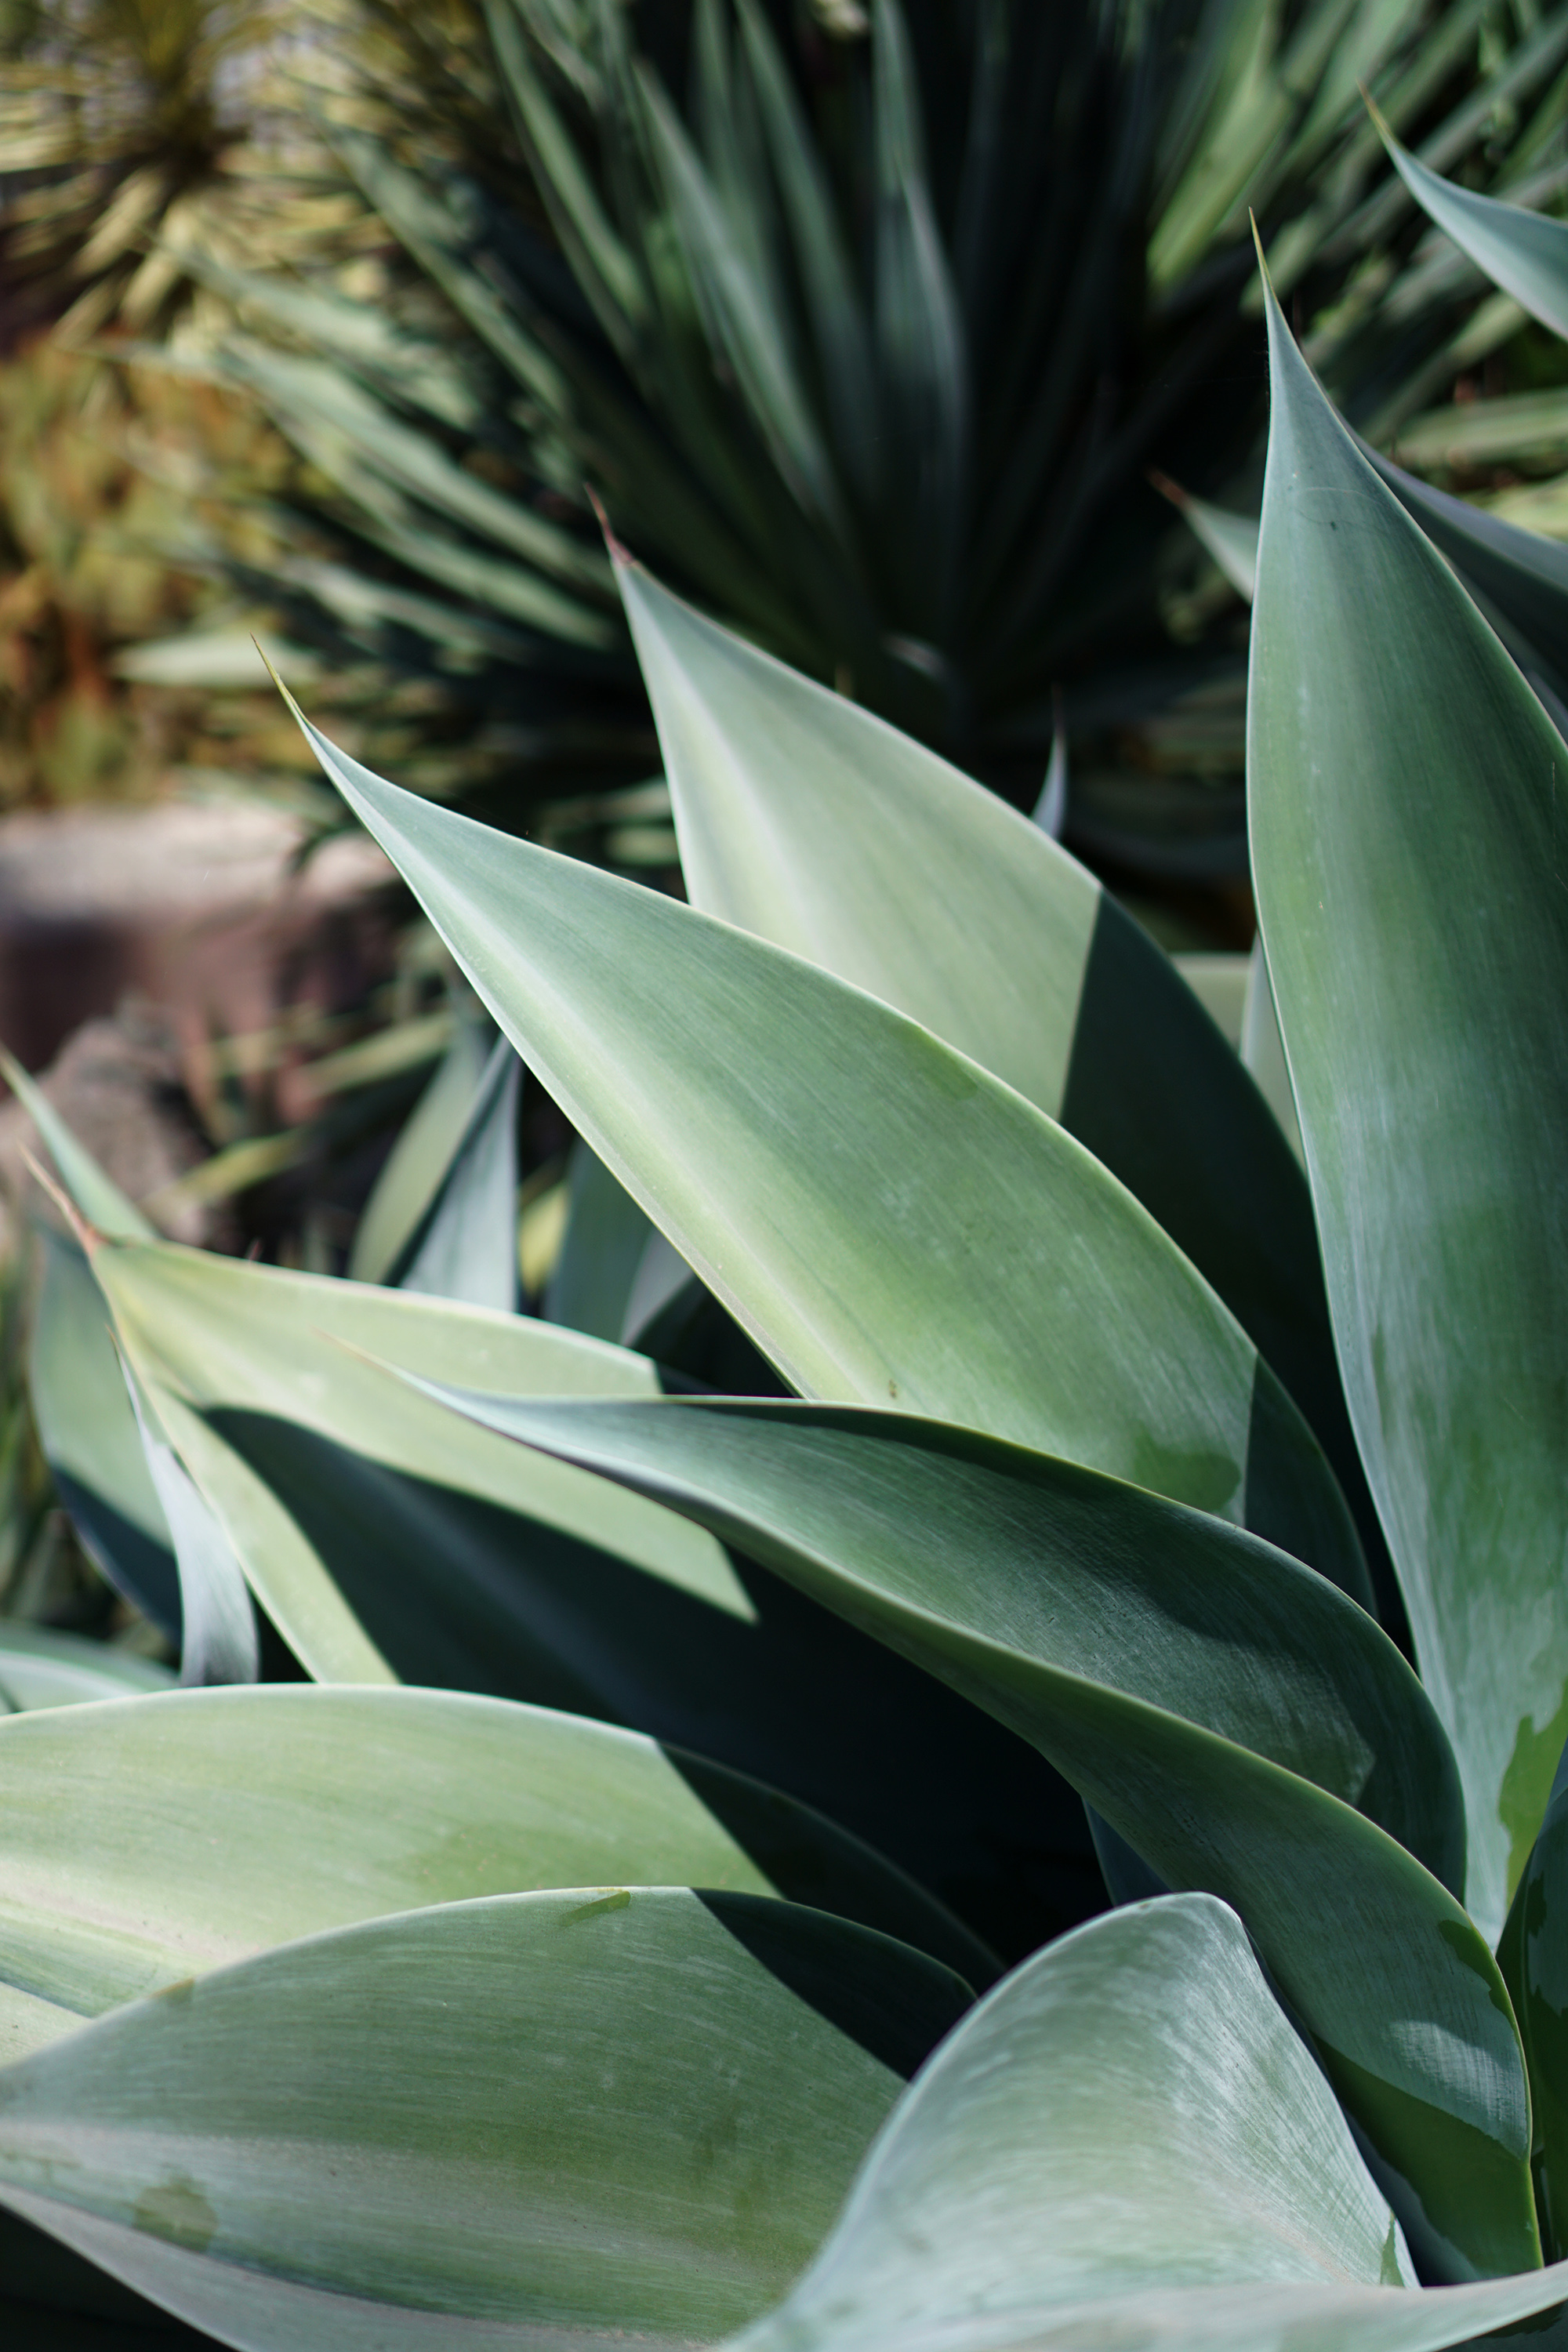 Agave leaves at the Gardens at Lake Merritt, Oakland California / Darker than Green